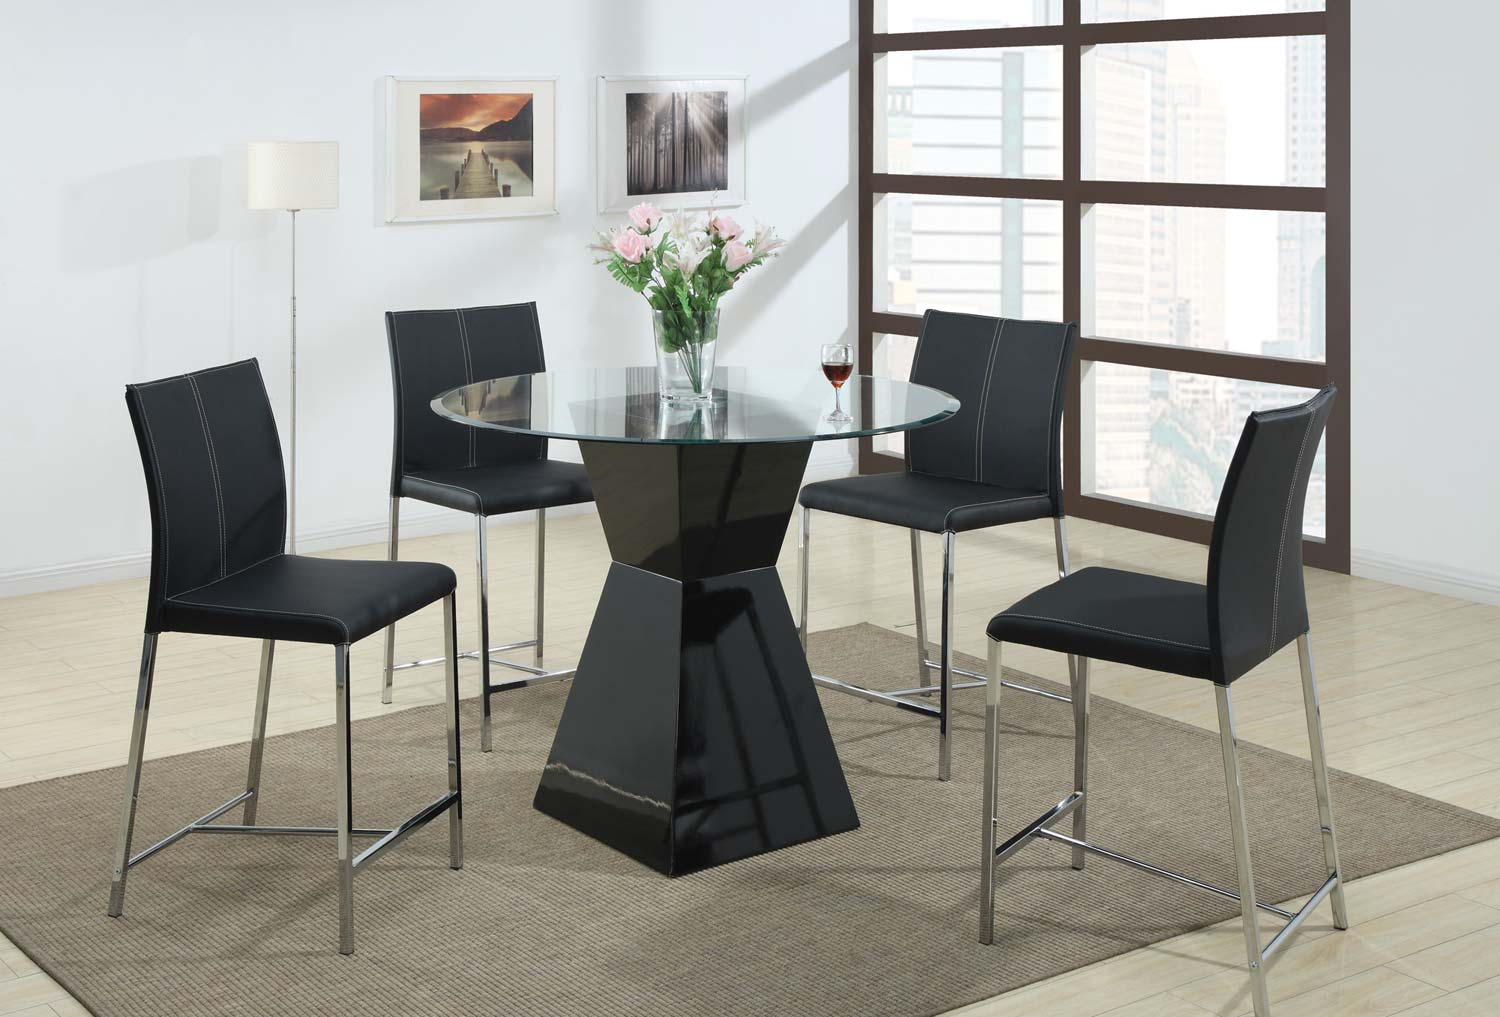 Coaster 103736 Round Glass Counter Height Dining Set - Black Chair